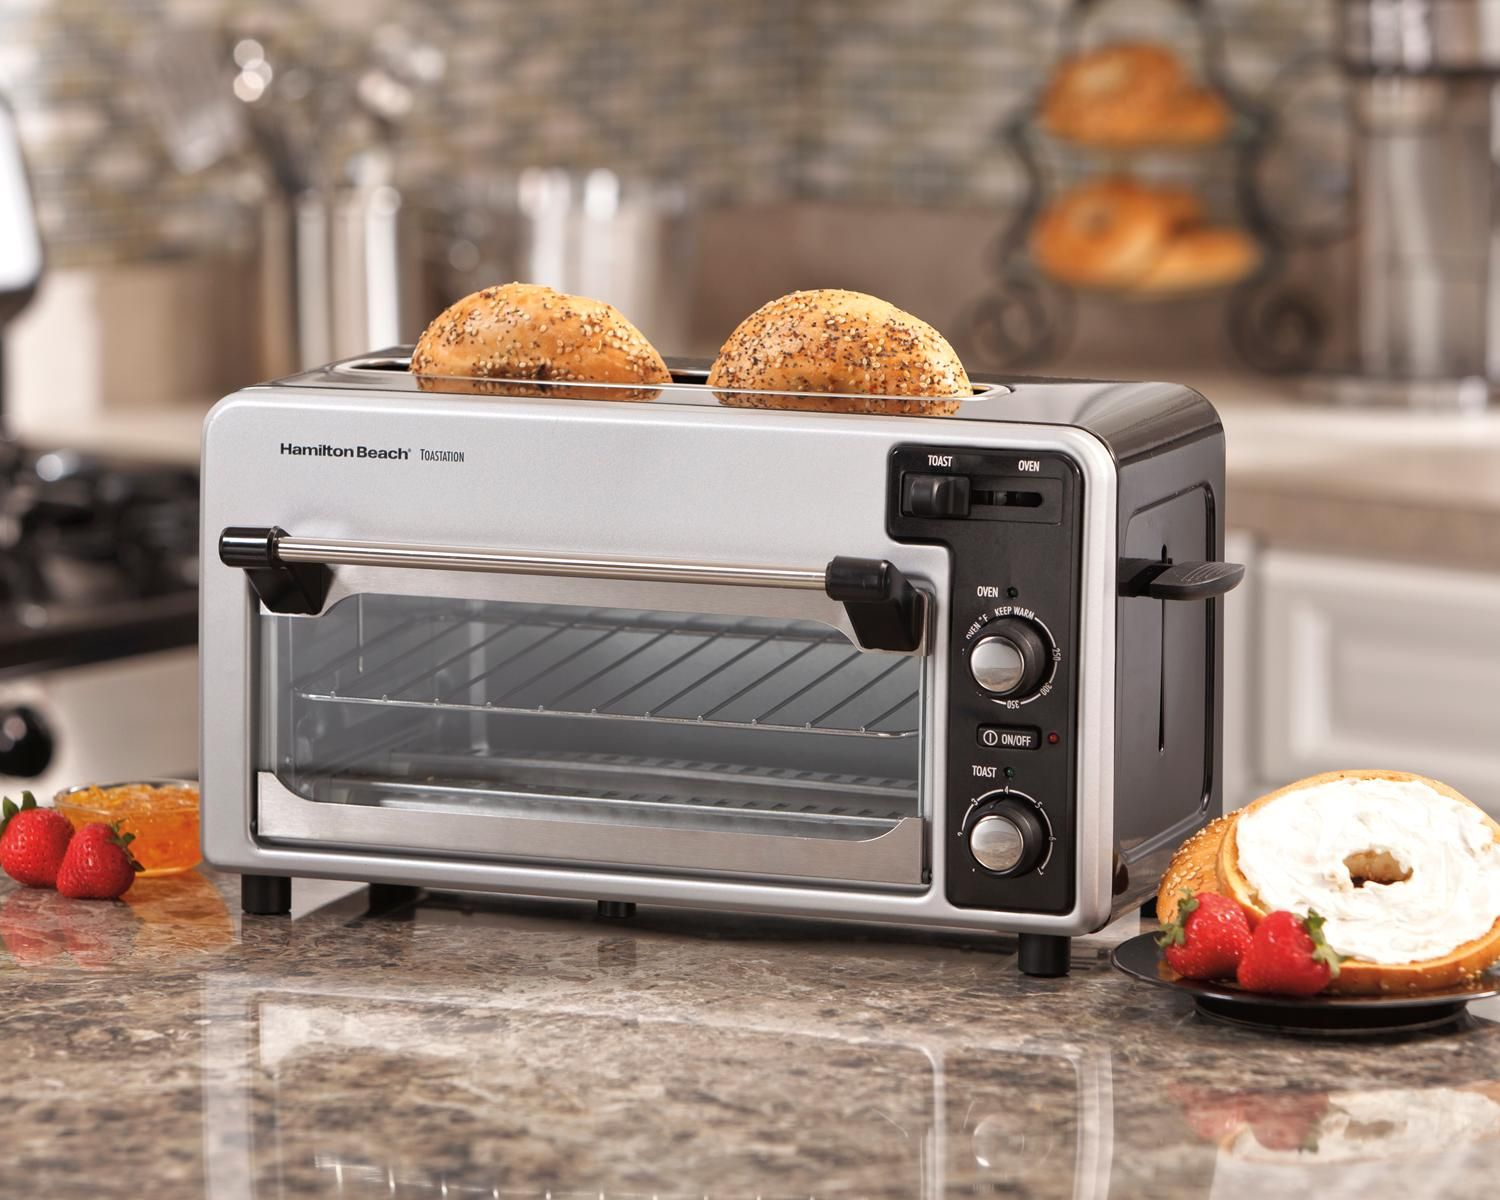 Toasters Slice 2 4 Ovens Convection Hot And Dog Small Bagel